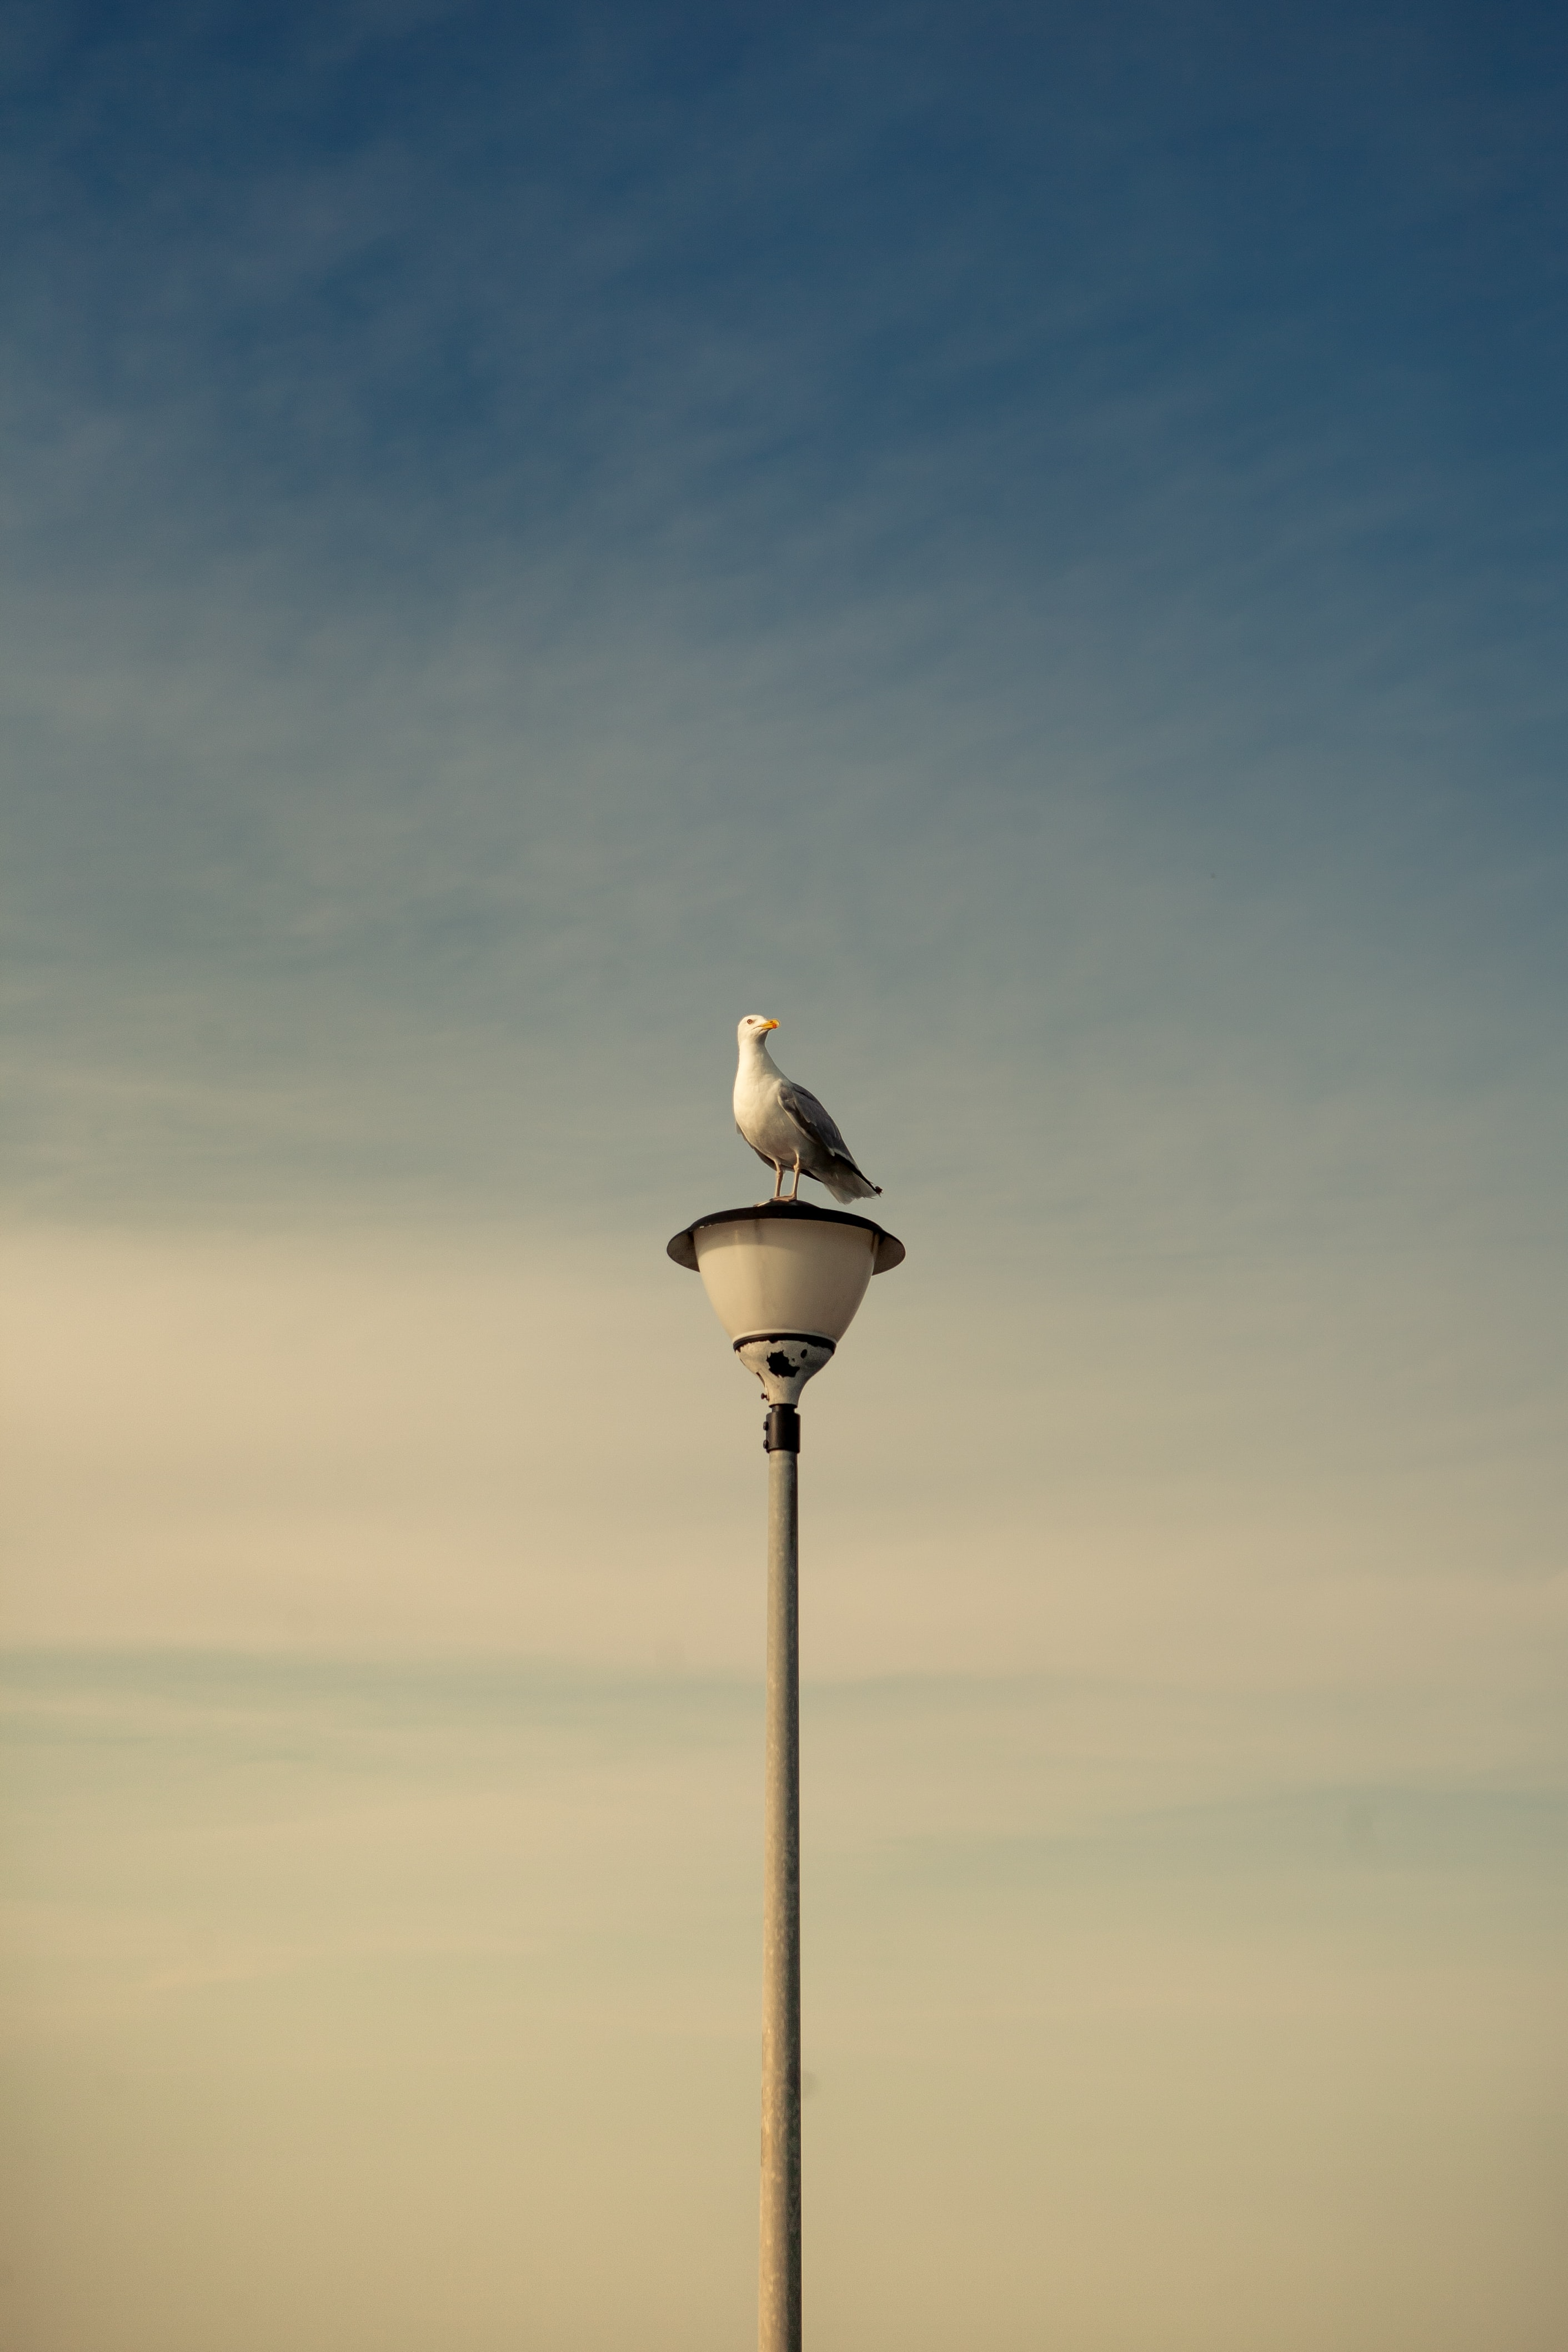 133557 download wallpaper Animals, Gull, Seagull, Bird, Lamp, Lantern, Sky screensavers and pictures for free